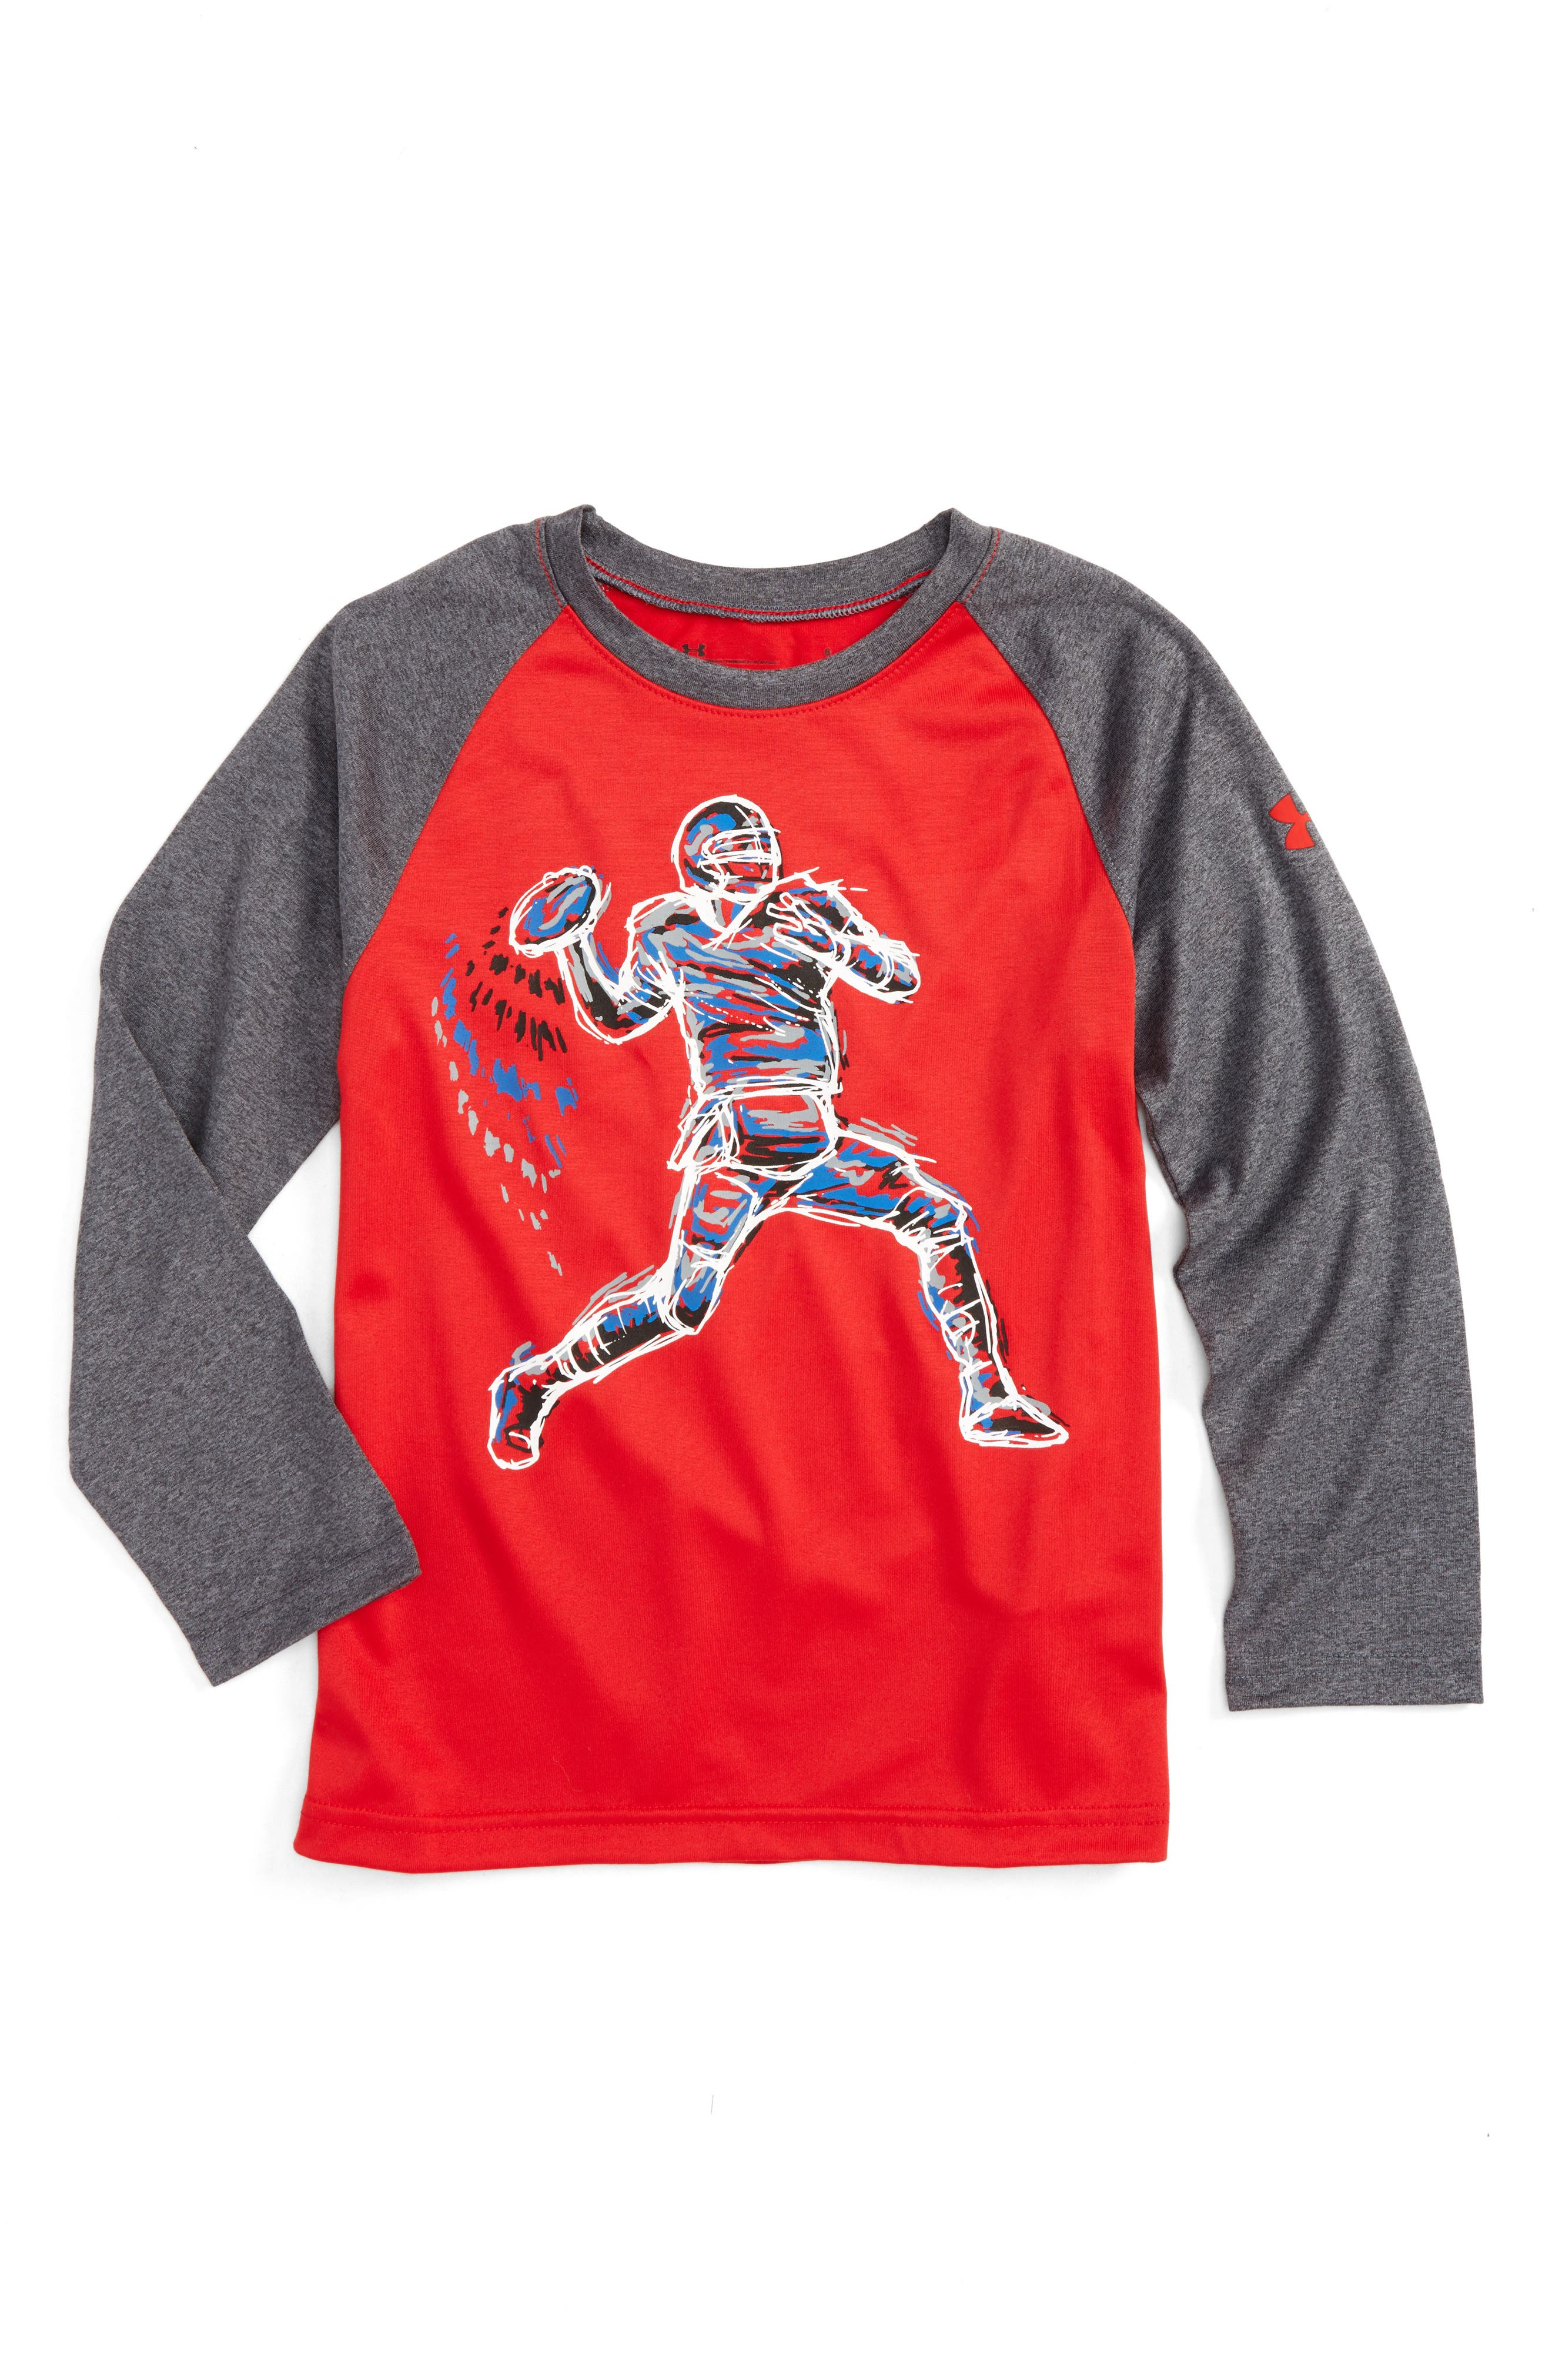 Illuminated QB Glow in the Dark T-Shirt,                             Main thumbnail 1, color,                             Red